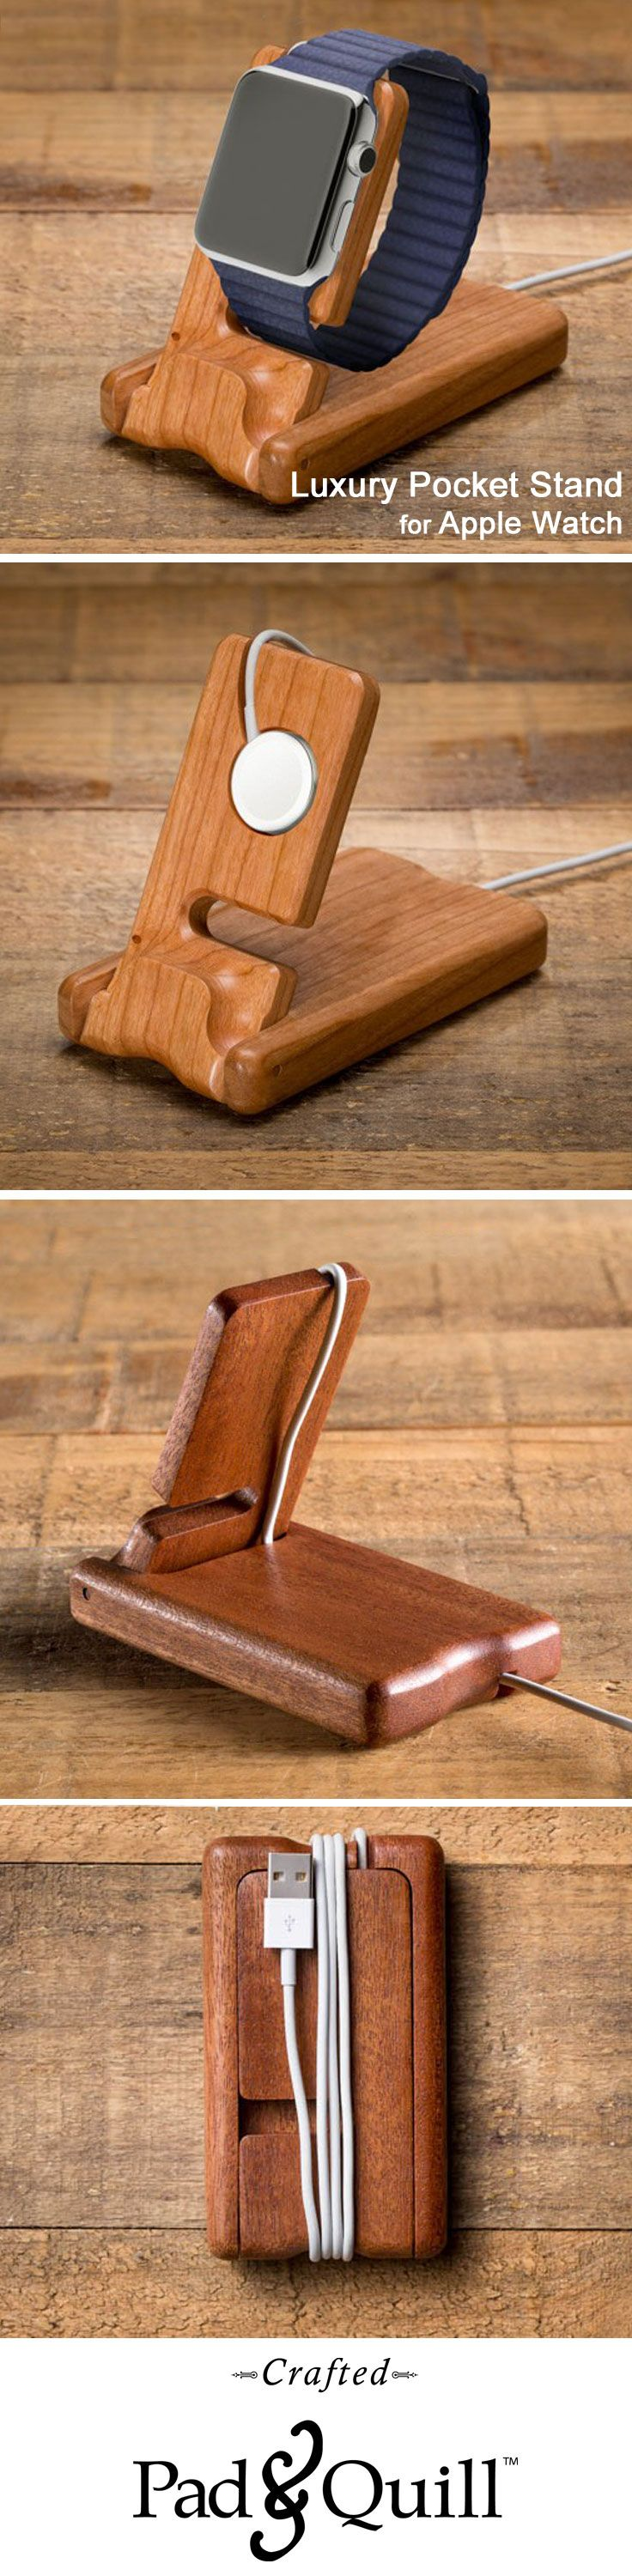 Meet the Pocket Stand for the Apple Watch. Hewn from a single piece of American Cherry or African Mahogany. Equipped with an inlet that cradles your charging magnet, the Pocket Stand will be a beautiful addition to your bedside table. Fold it shut with magnet in tow and it becomes a slender case that slips streamline into a pocket or bag.   #applewatch www.PadandQuill.com